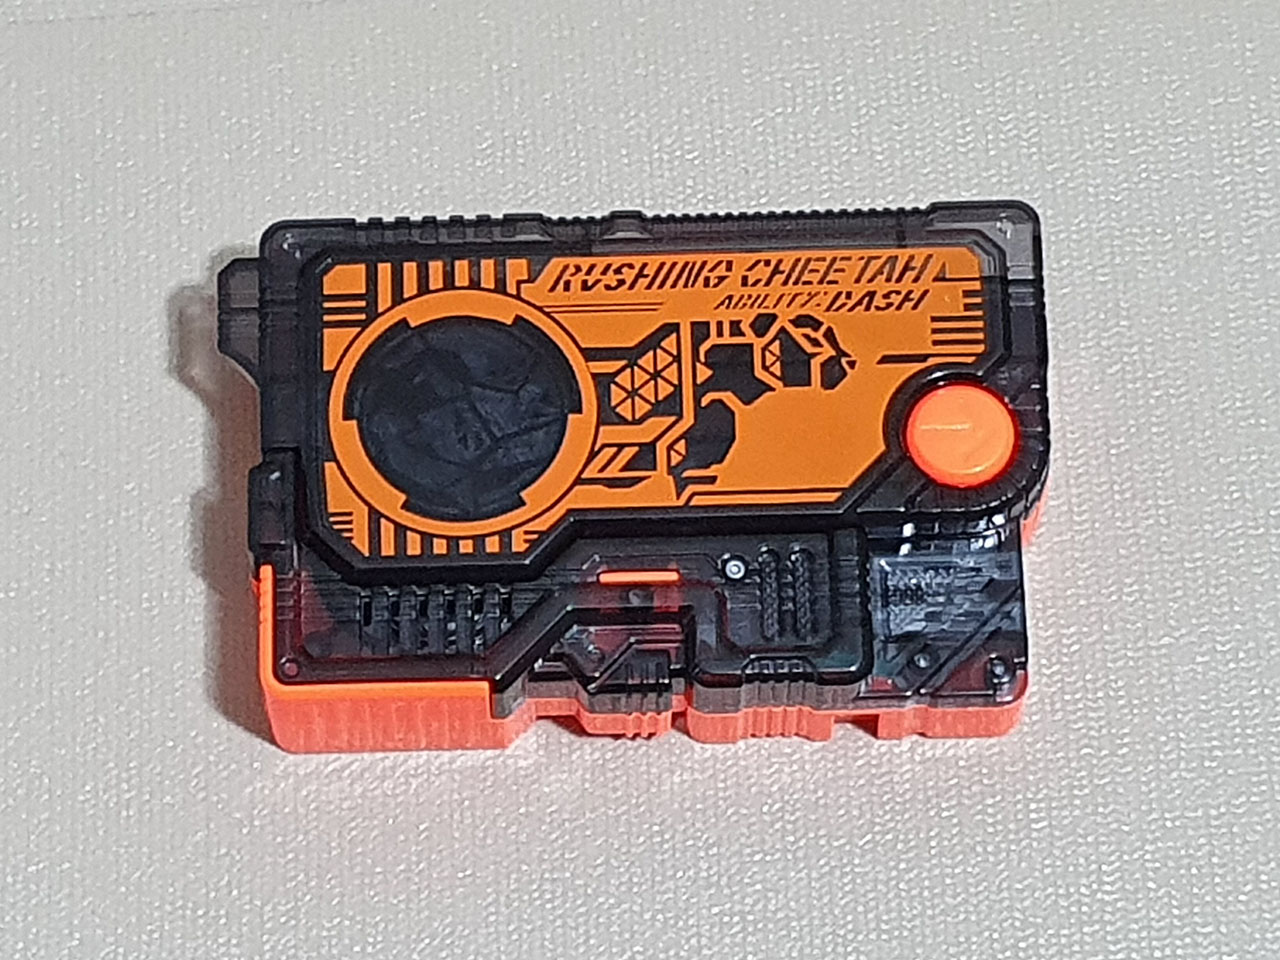 Kamen Rider Zero One Rushing Cheetah Progrise Key